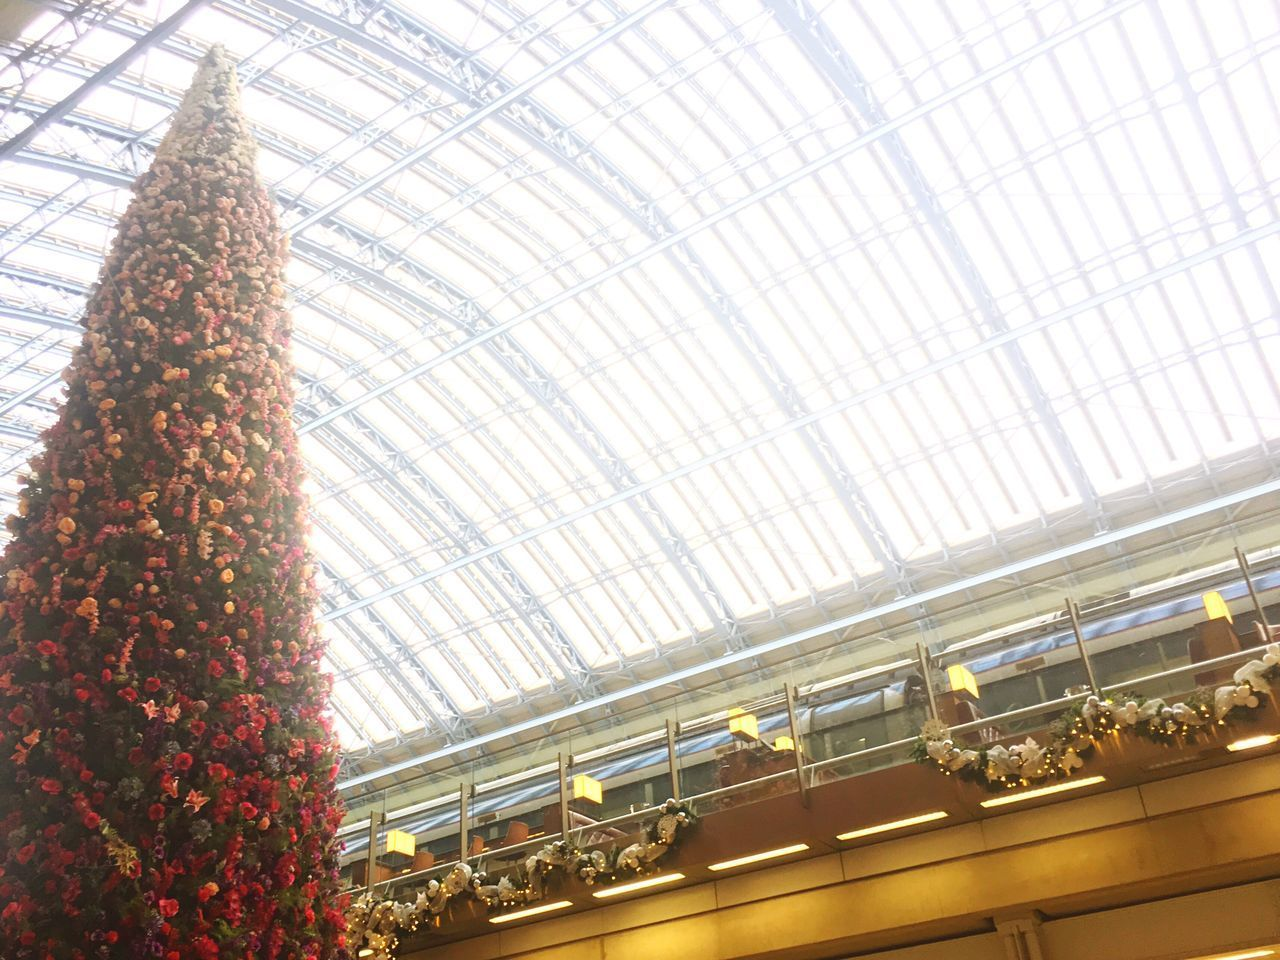 Xmas Christmas Tree St Pancras Train Station Arched Roof Decoration Eurostar Travel Destinations London Nopeople